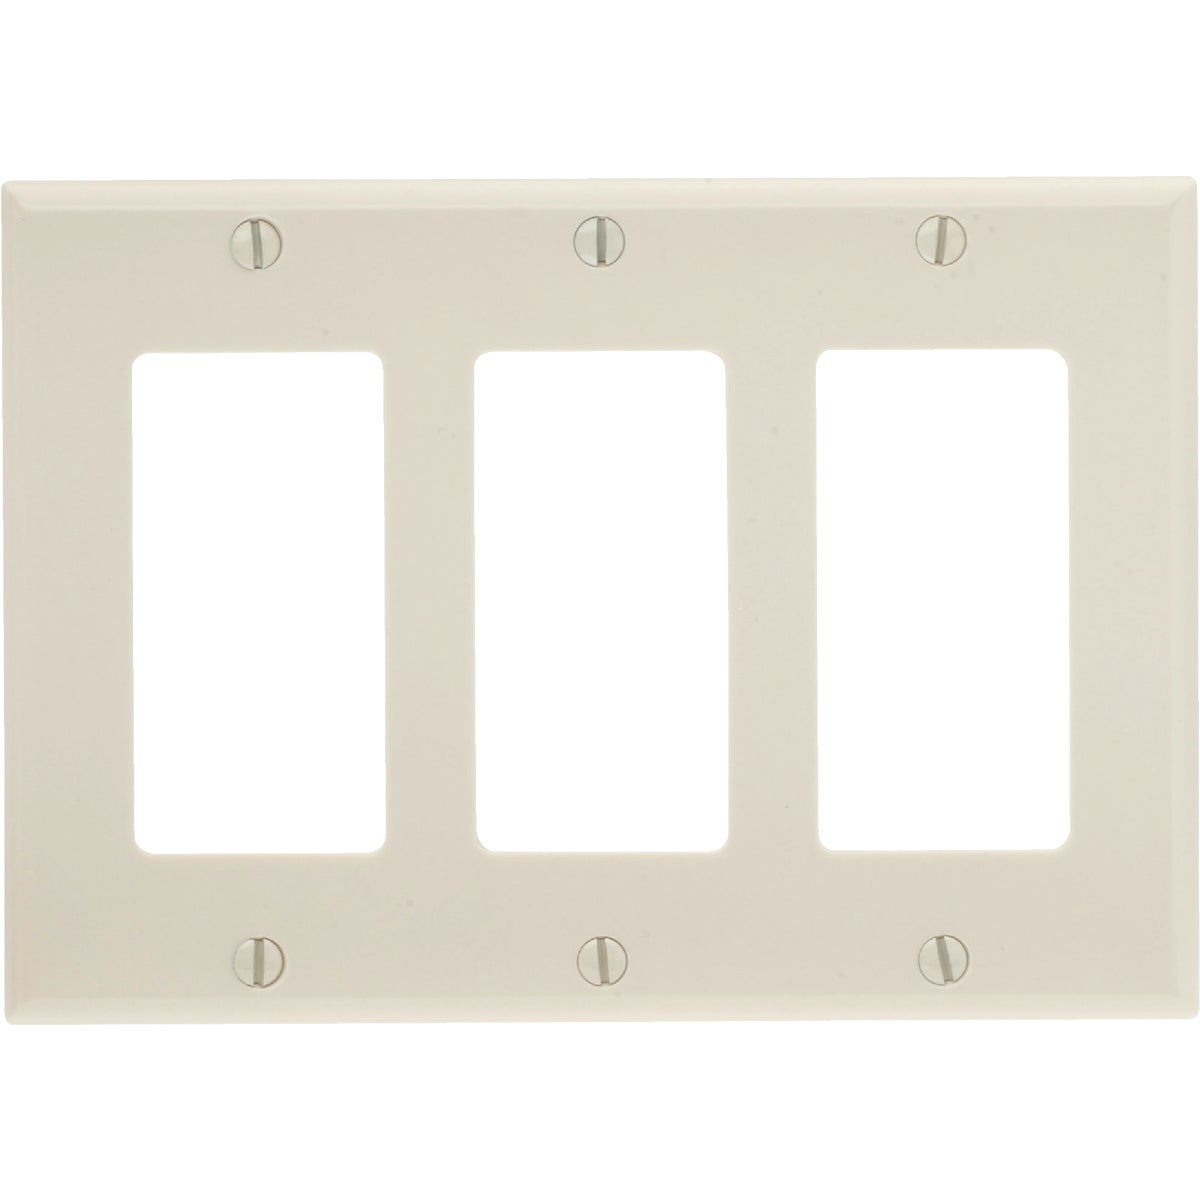 LT ALM ROCKER WALLPLATE - 011-80411-00T by Leviton Mfg Co